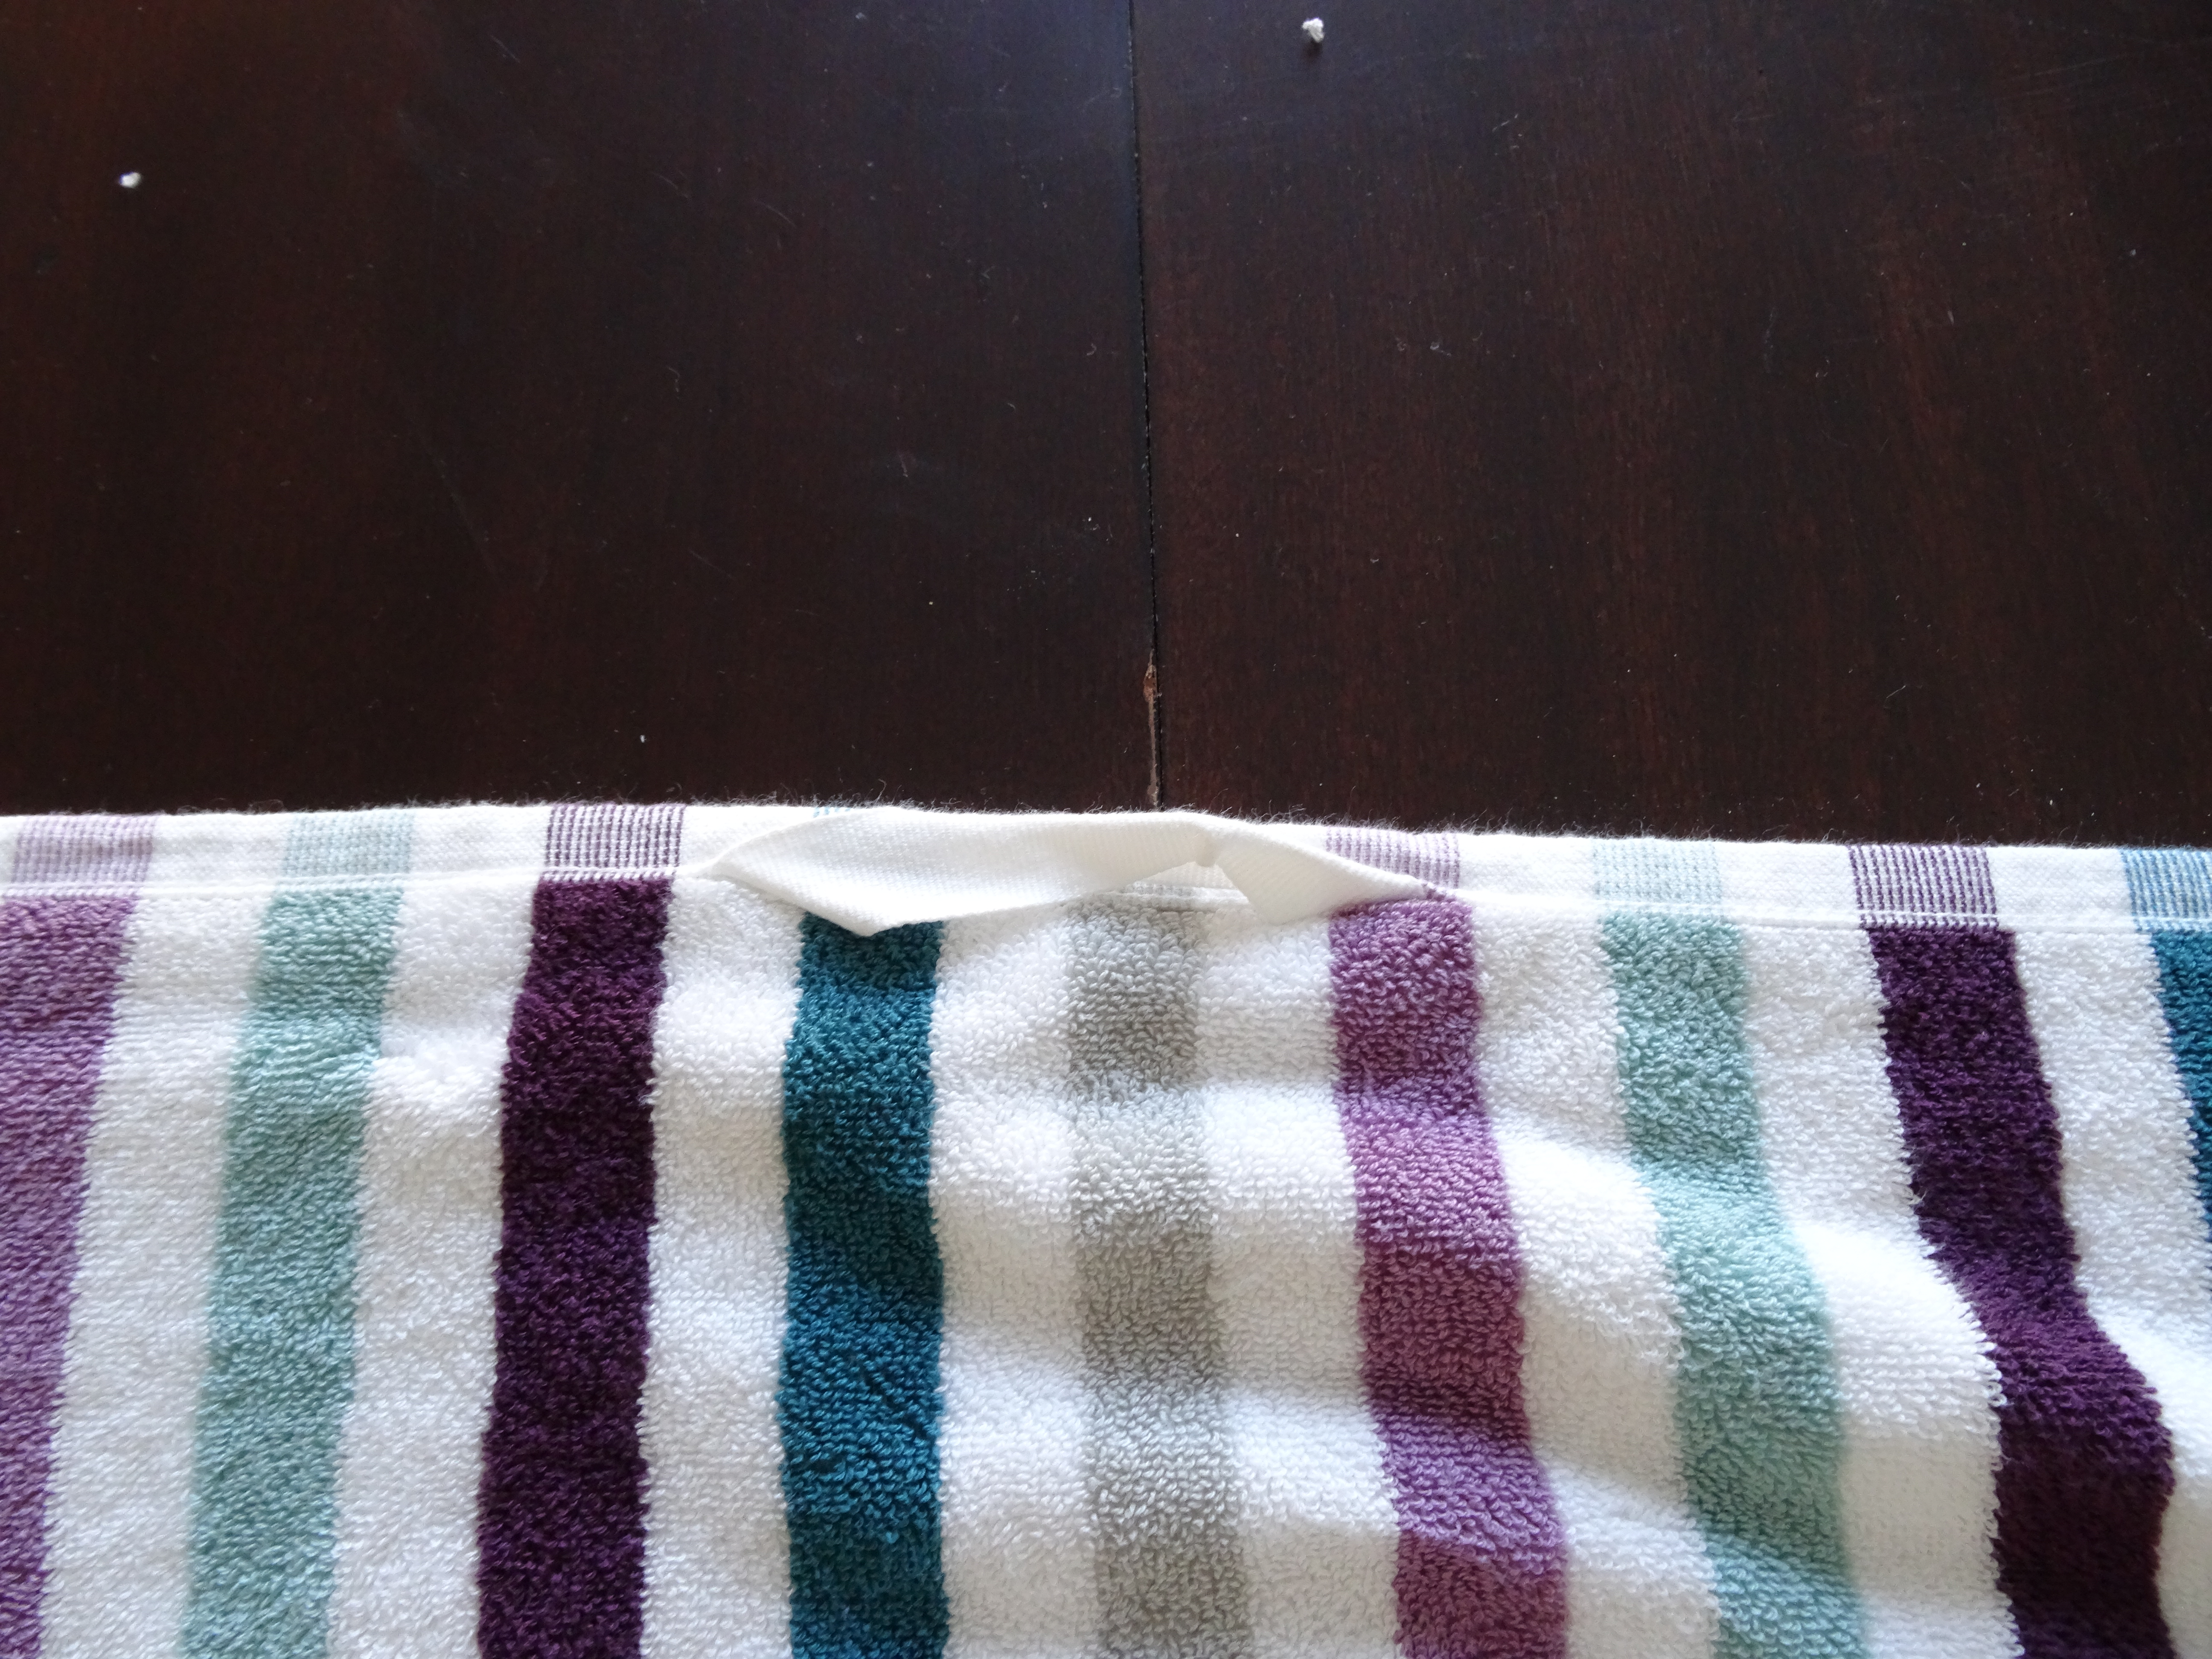 Ikea bathroom towels - So You Ll Need A Bath Towel Sheet And A Hand Towel I Chose Matching Patterns But A Contrast Would Be Cute Too